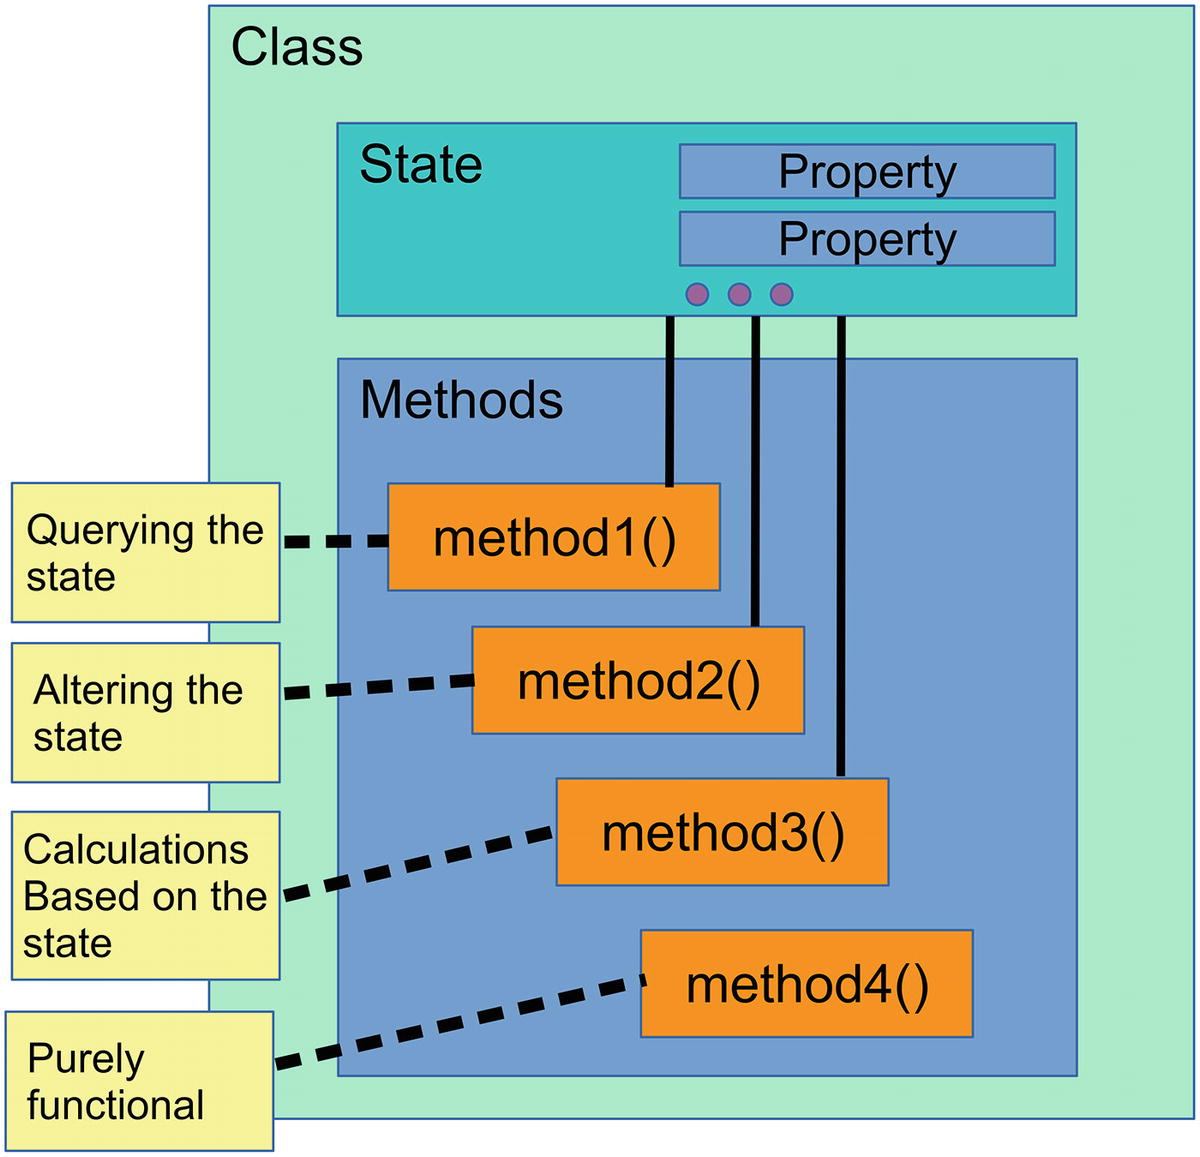 Classes at Work: Properties and Functions | SpringerLink